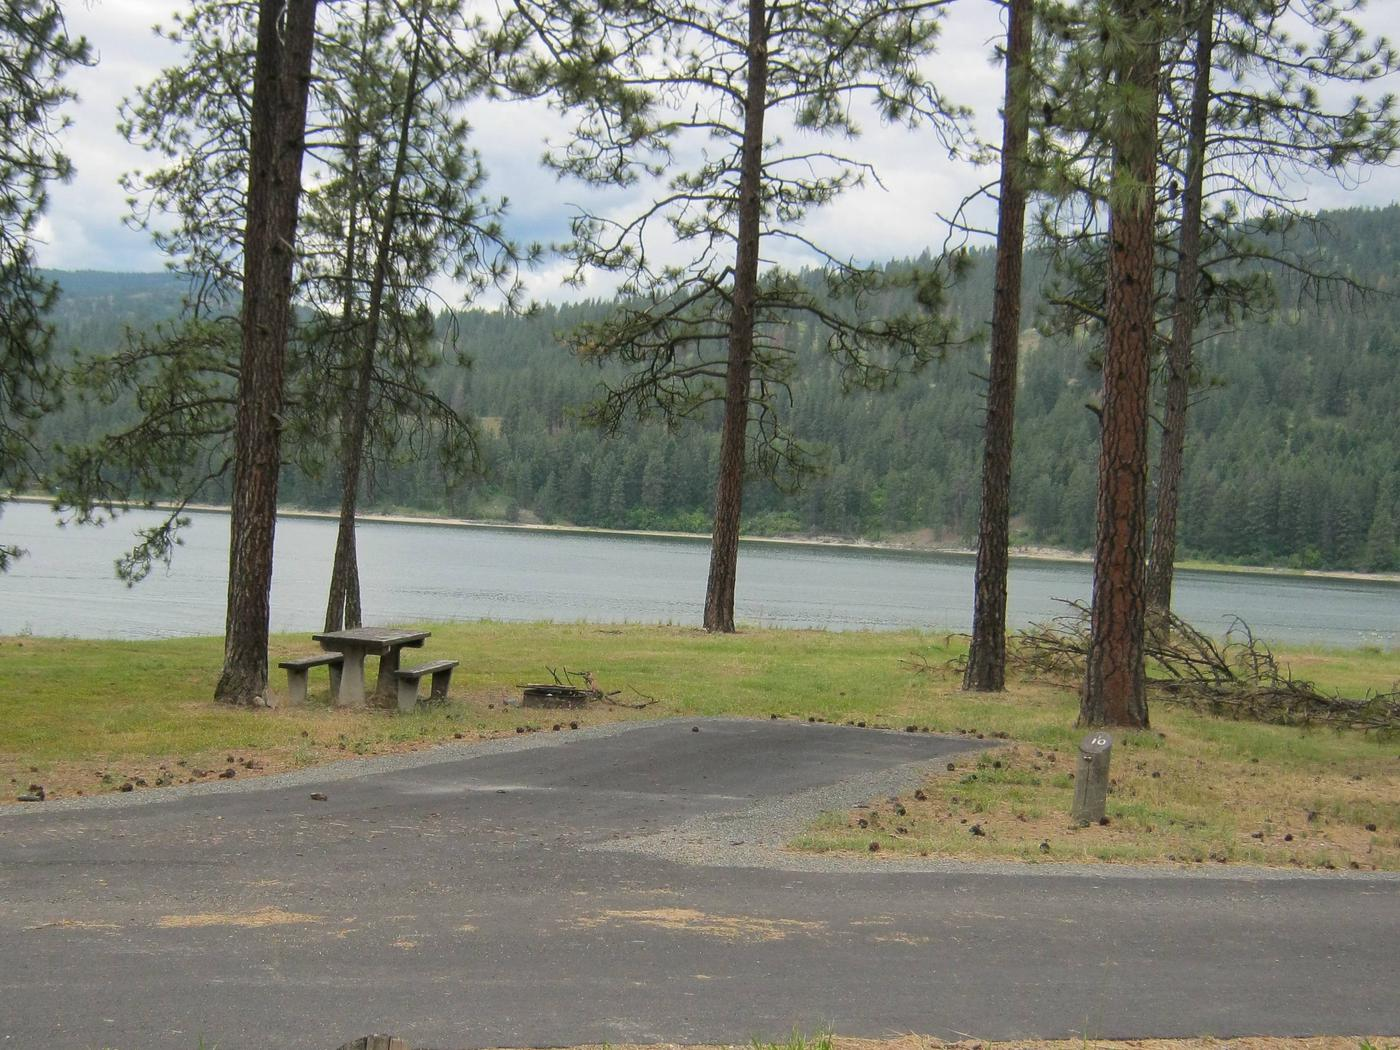 Pine trees and lake in the back dropBack in paved parking